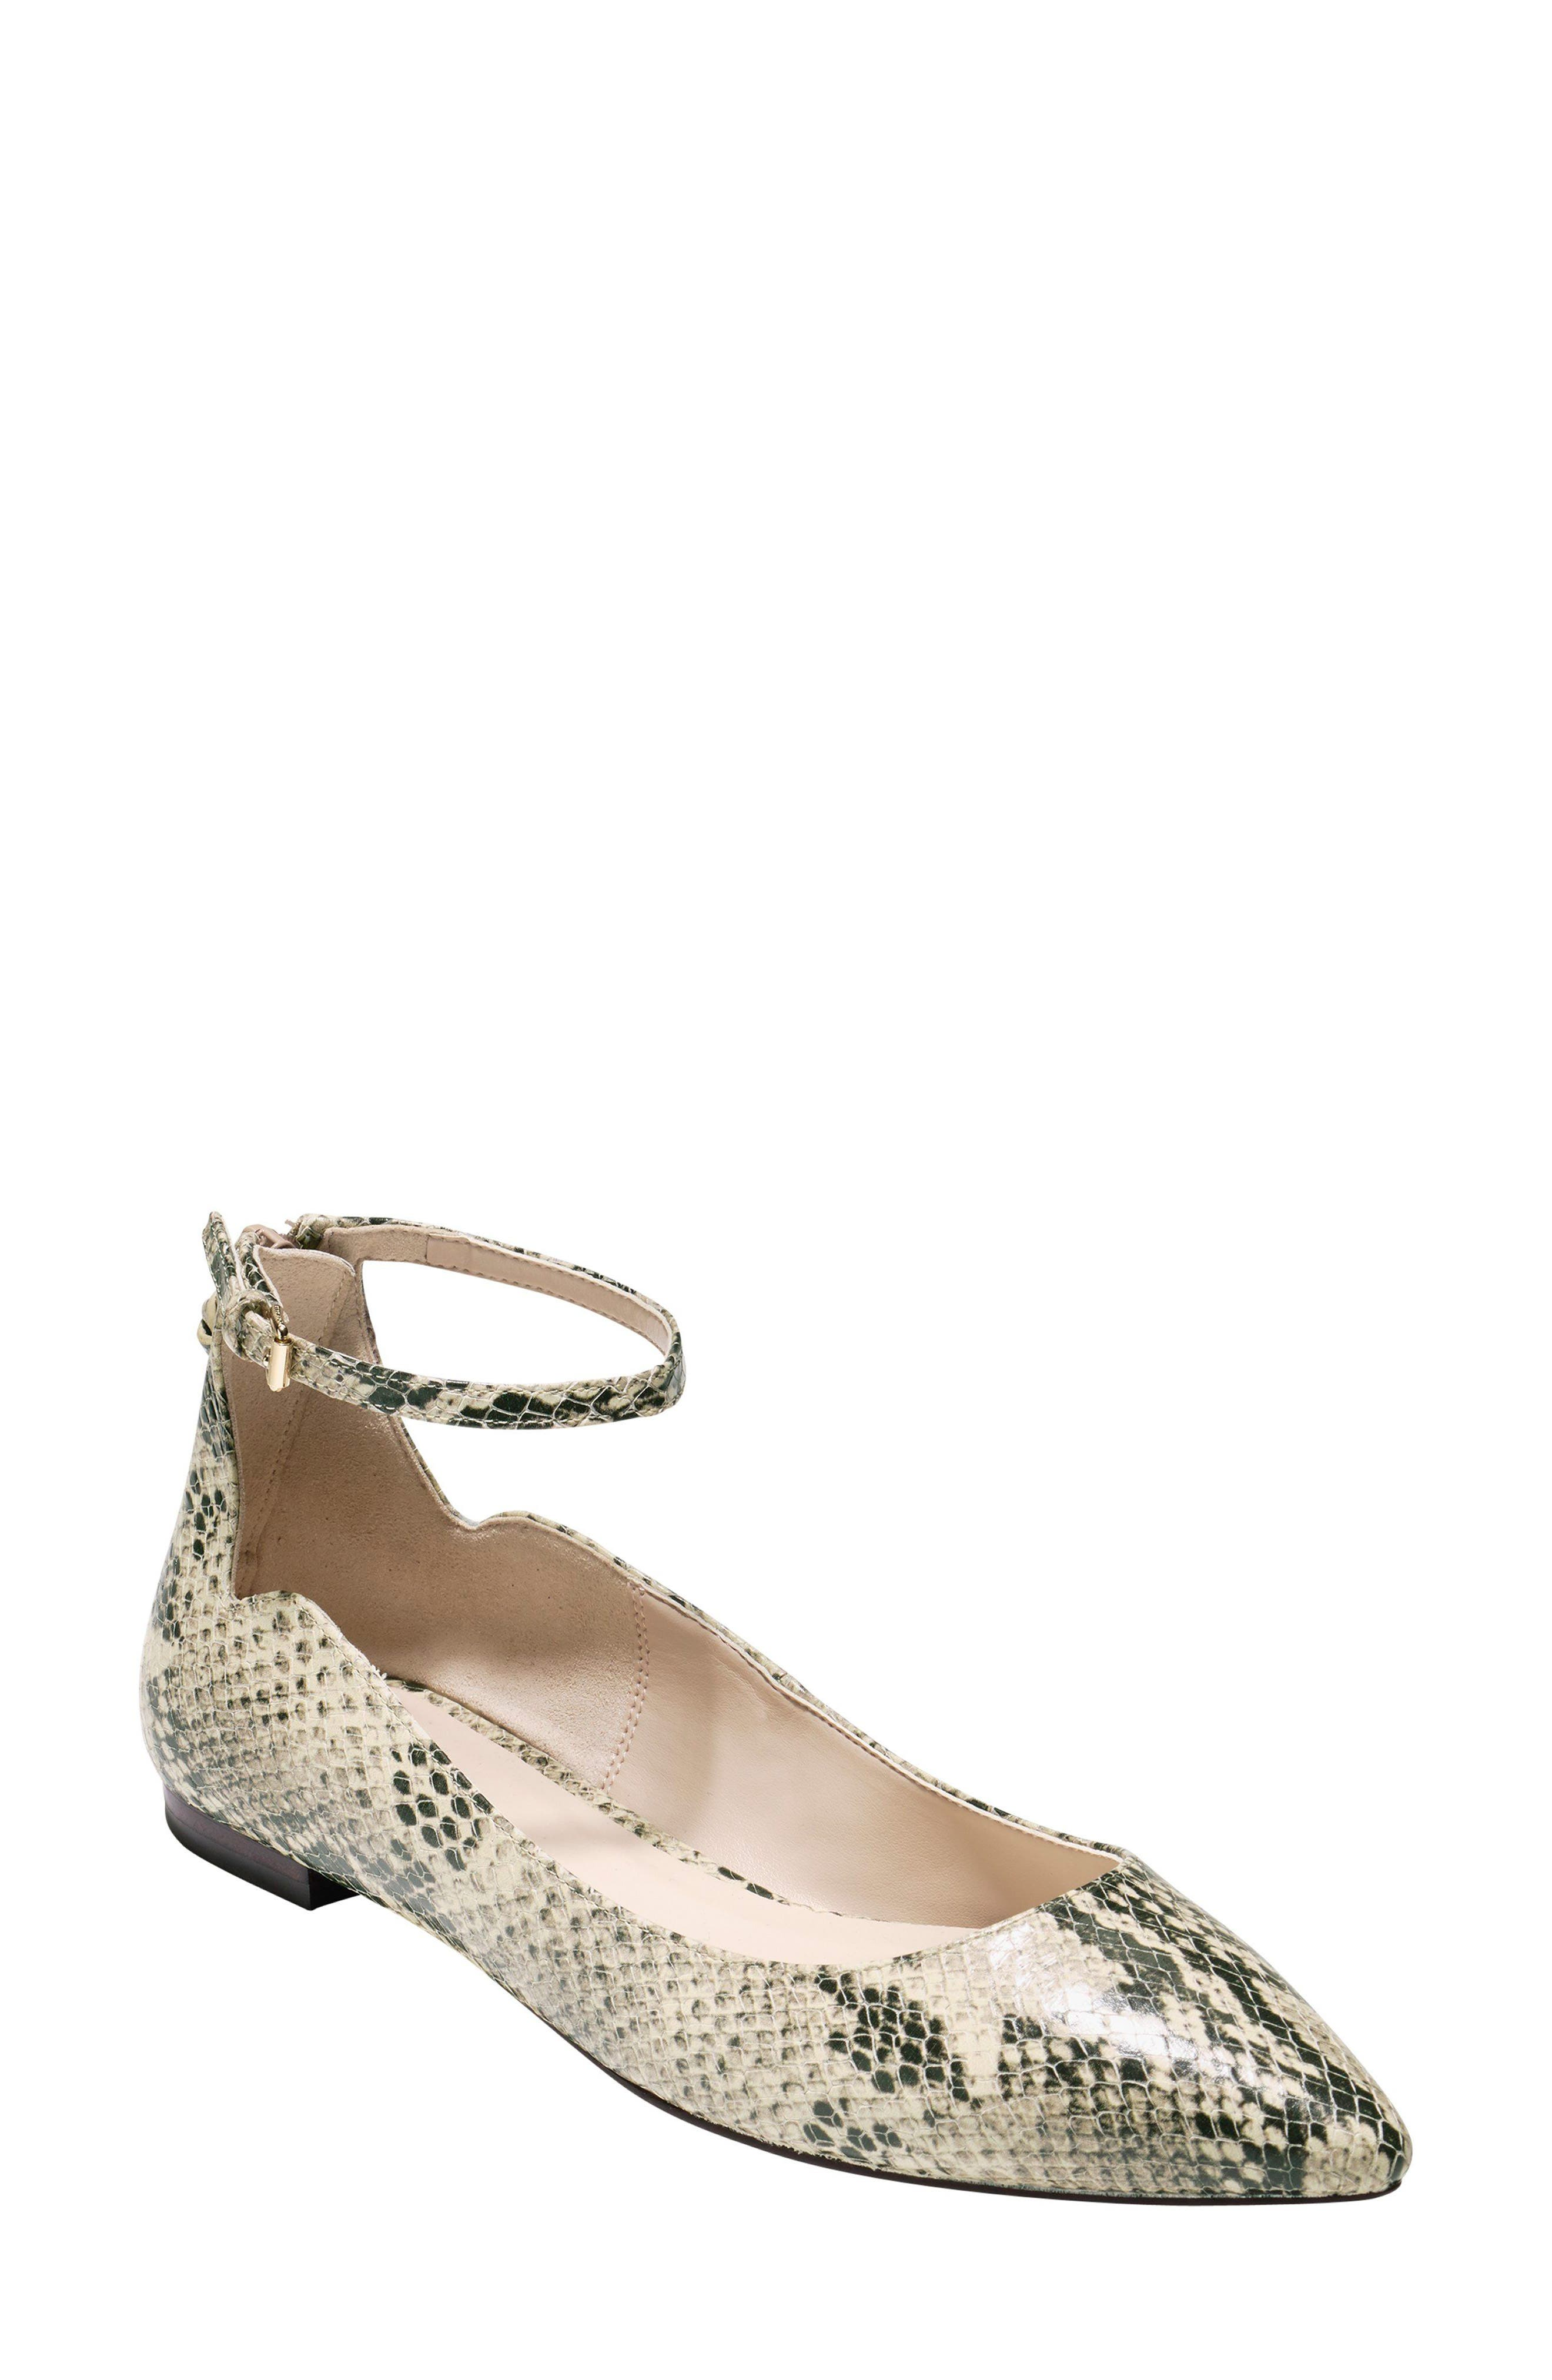 Alternate Image 1 Selected - Cole Haan Millicent Ankle Strap Skimmer Flat (Women)